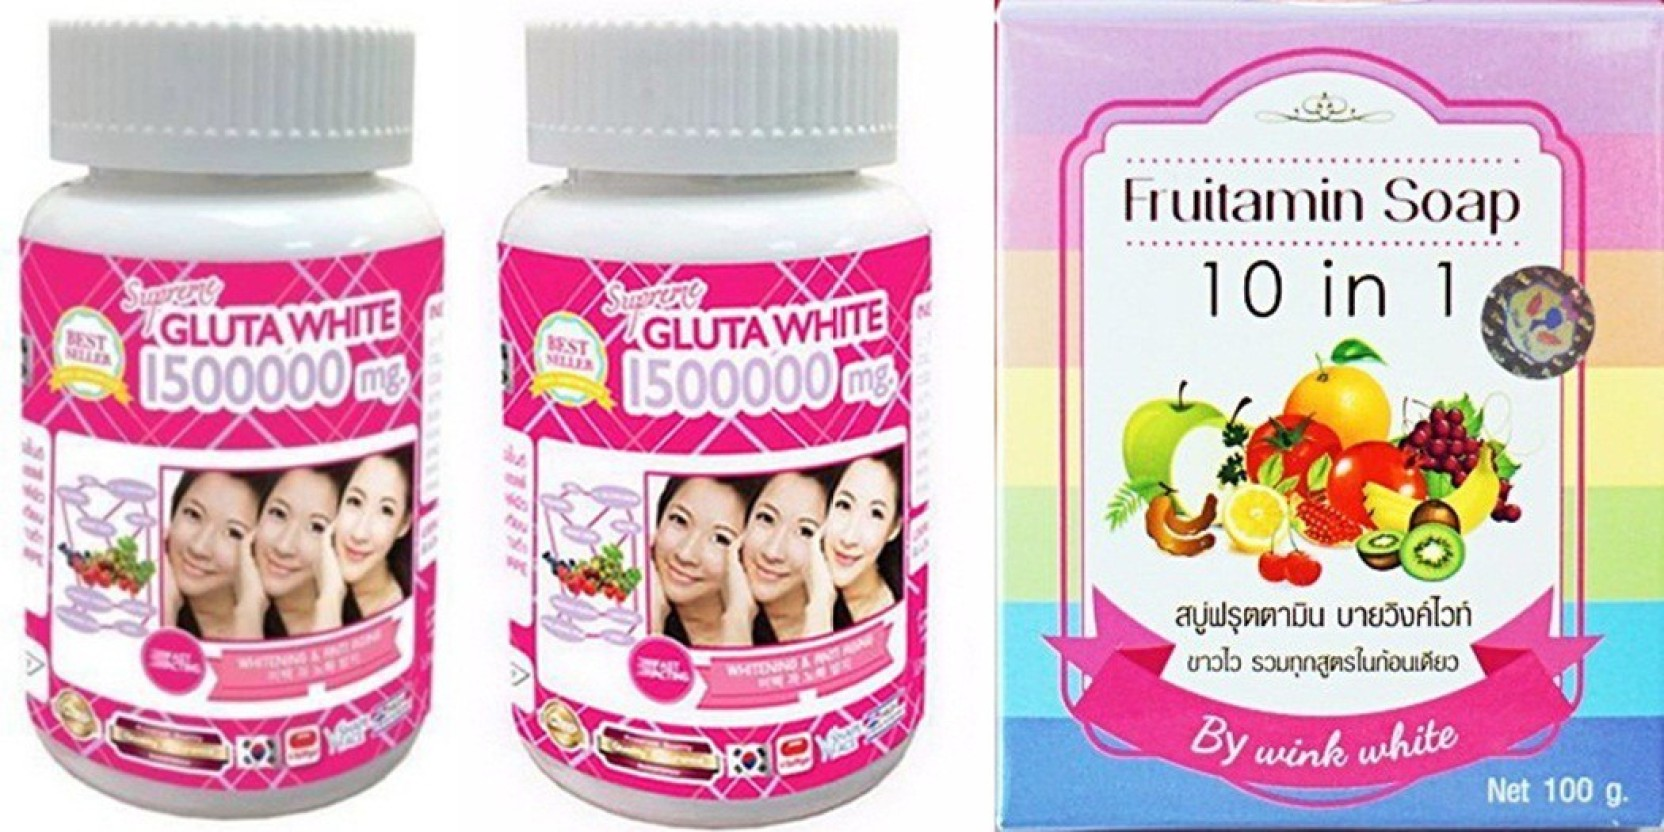 Daftar Harga Fruitamin Soap 10 In 1 By Wink White Update 2018 Fujifilm X A3 Kit 16 50mm F35 56 Ois Ii Brown Xa3 Cokelat Muda Gluta 2 Bottles Supreme 1500000 Mg Grape Seed Extract